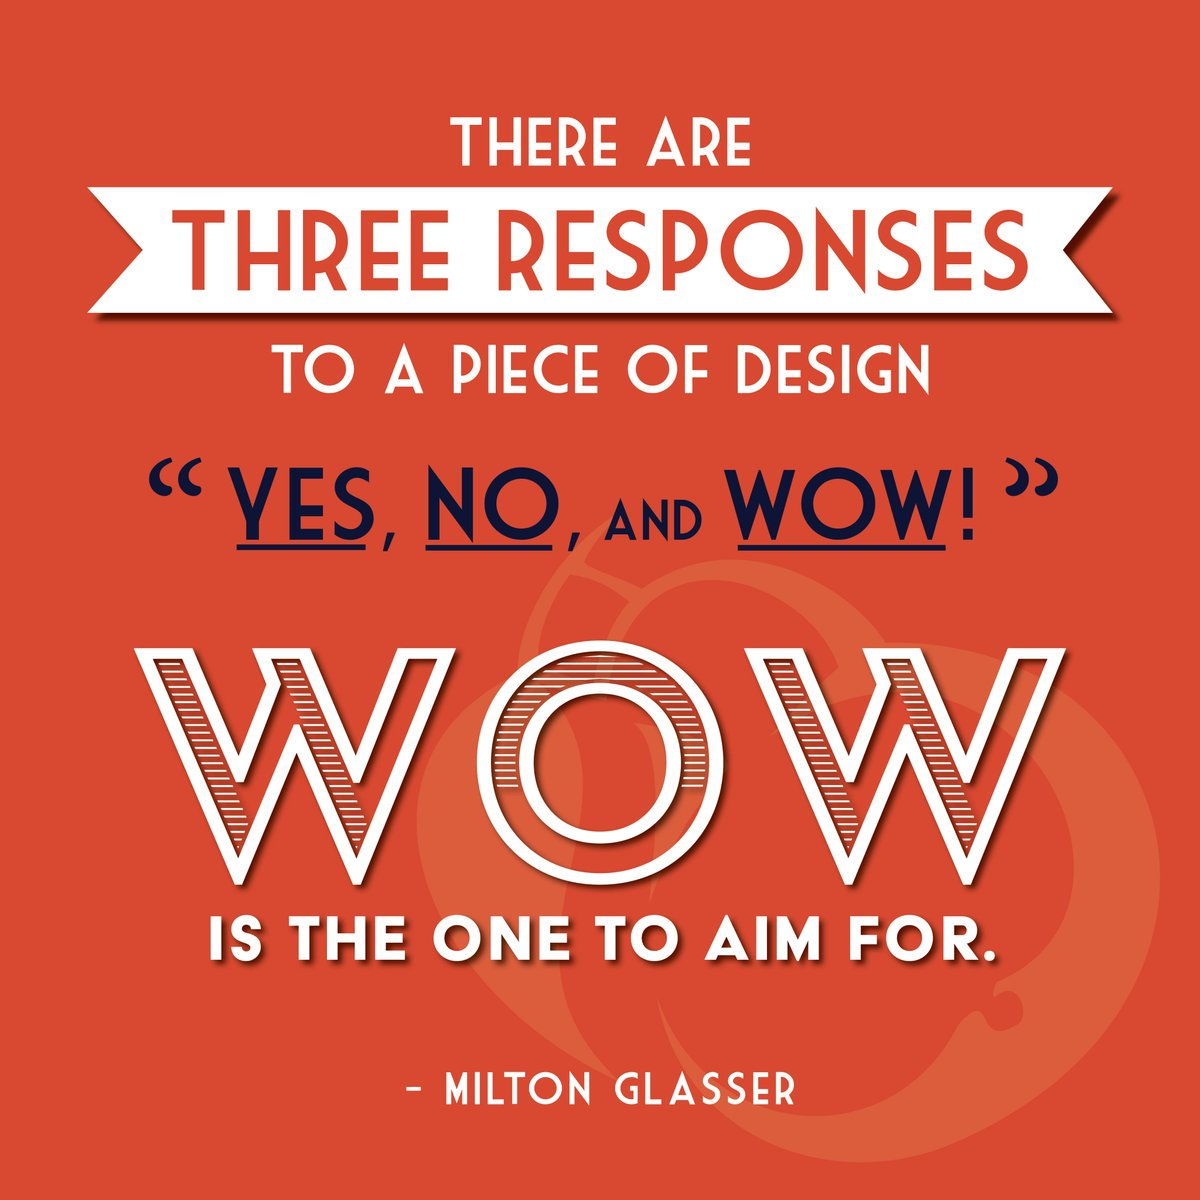 We couldn't agree more! #quotestoliveby #graphicdesign #Wow #famousdesigner #miltonglasser #typographypic.twitter.com/8g5PN3srgi